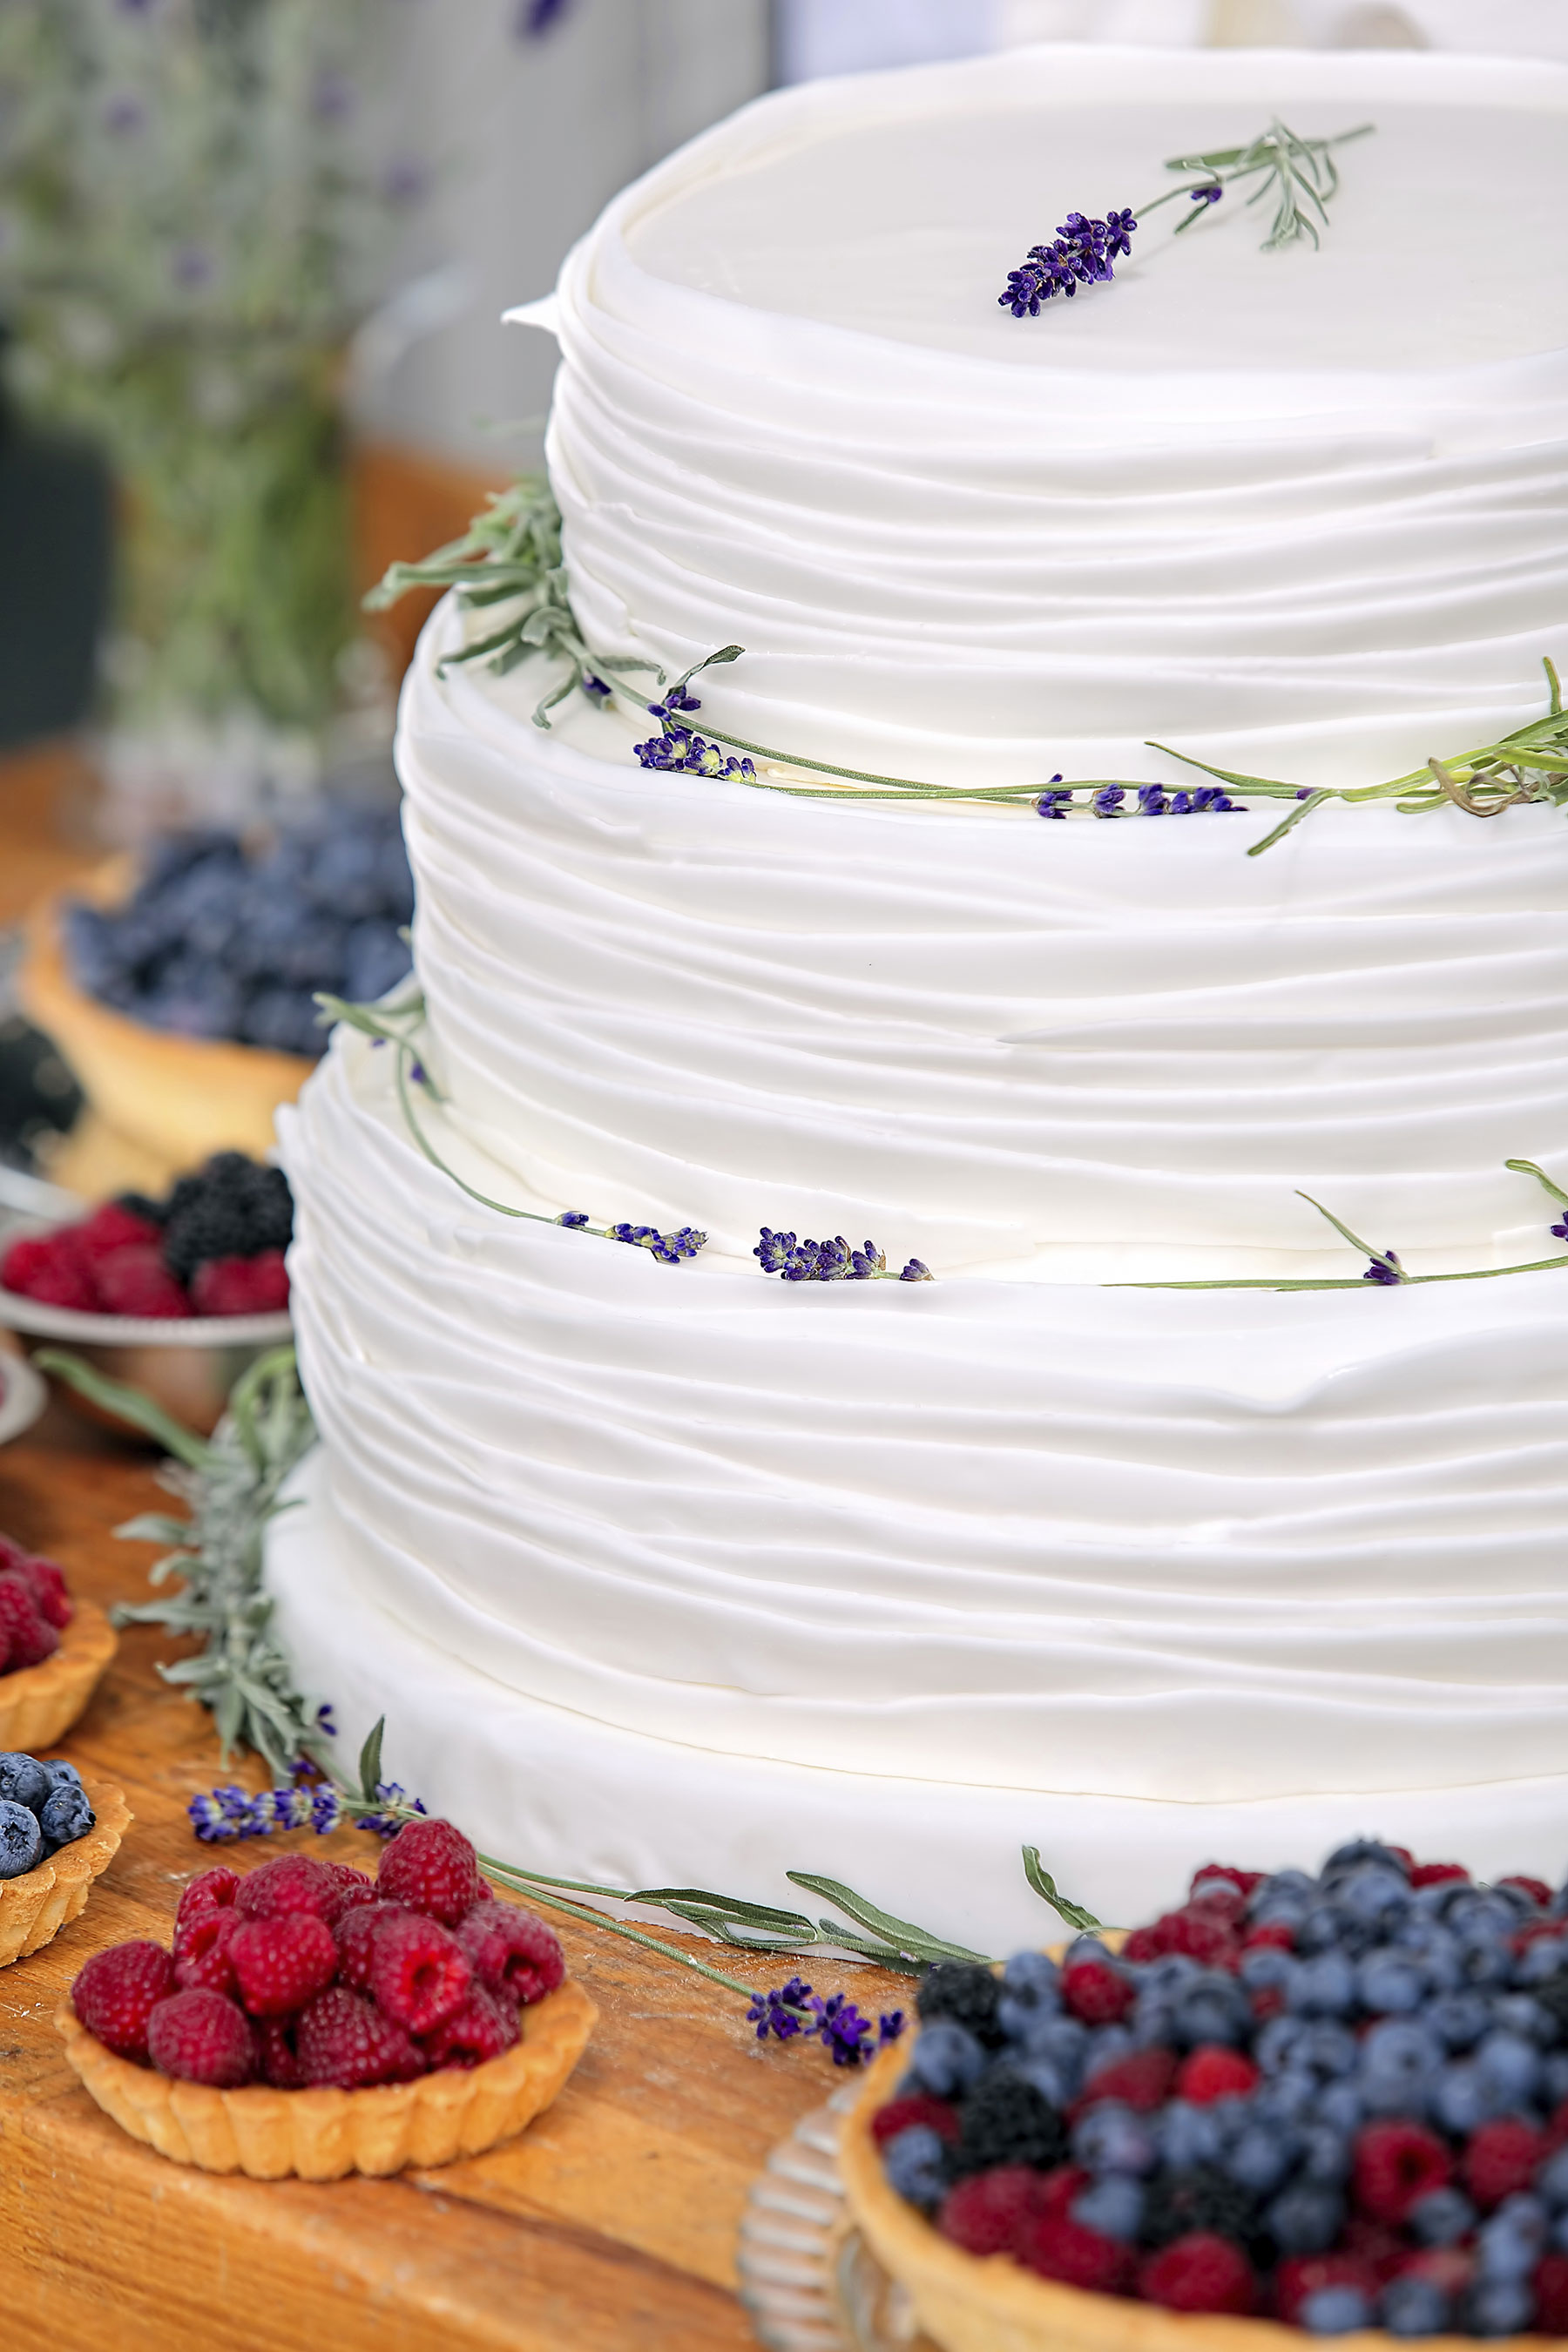 All-natural cake for a local, organic-grown food supplier